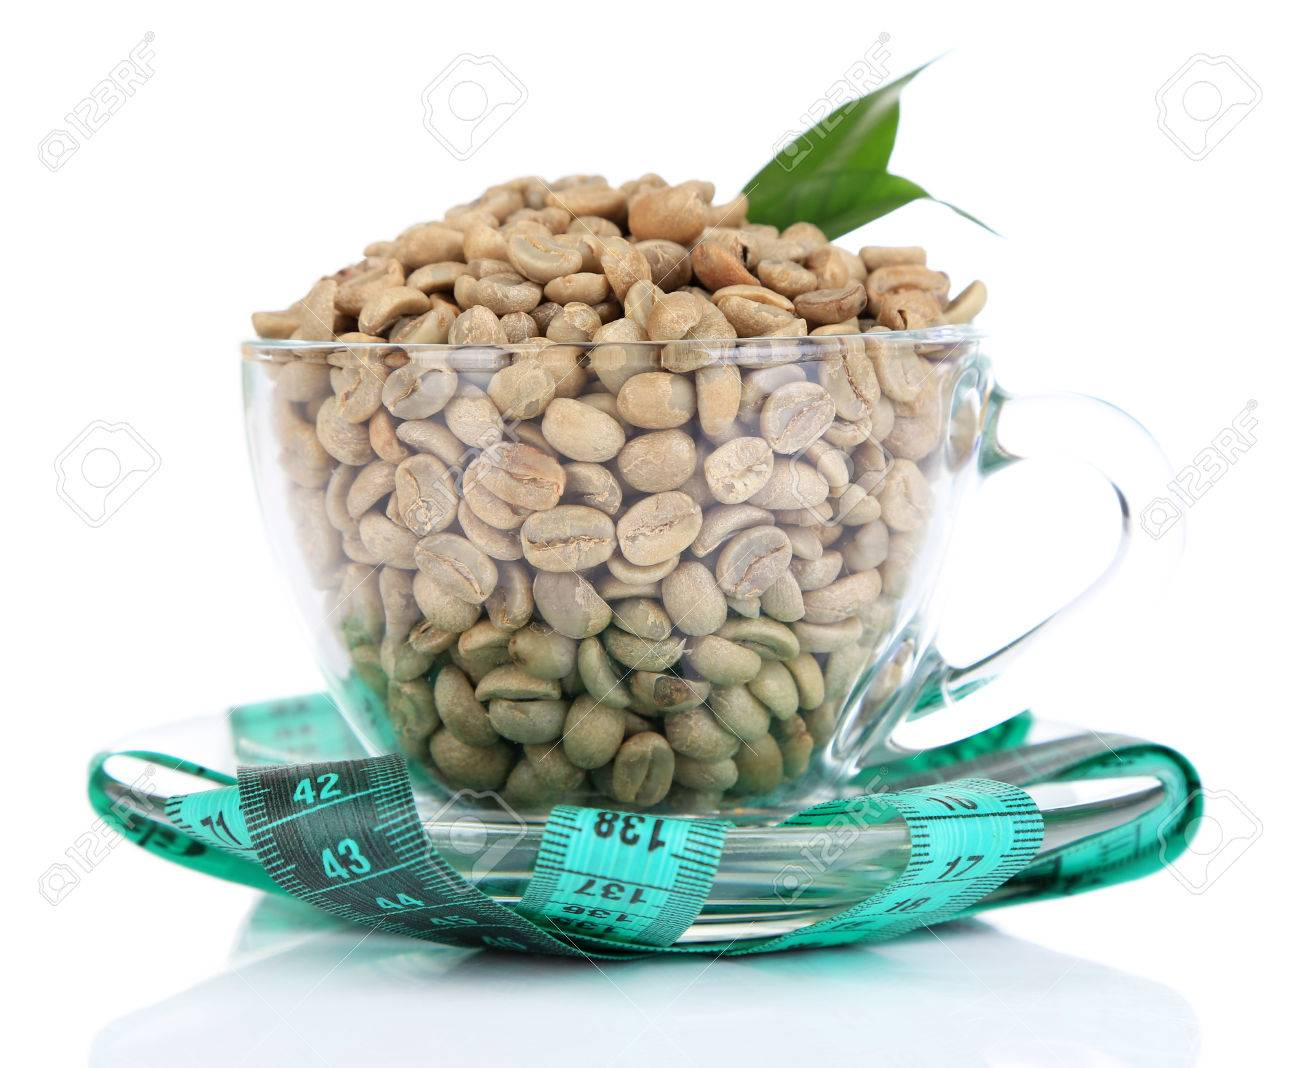 Raw Green Coffee Beans In Glass Cup And Measuring Tape Isolated